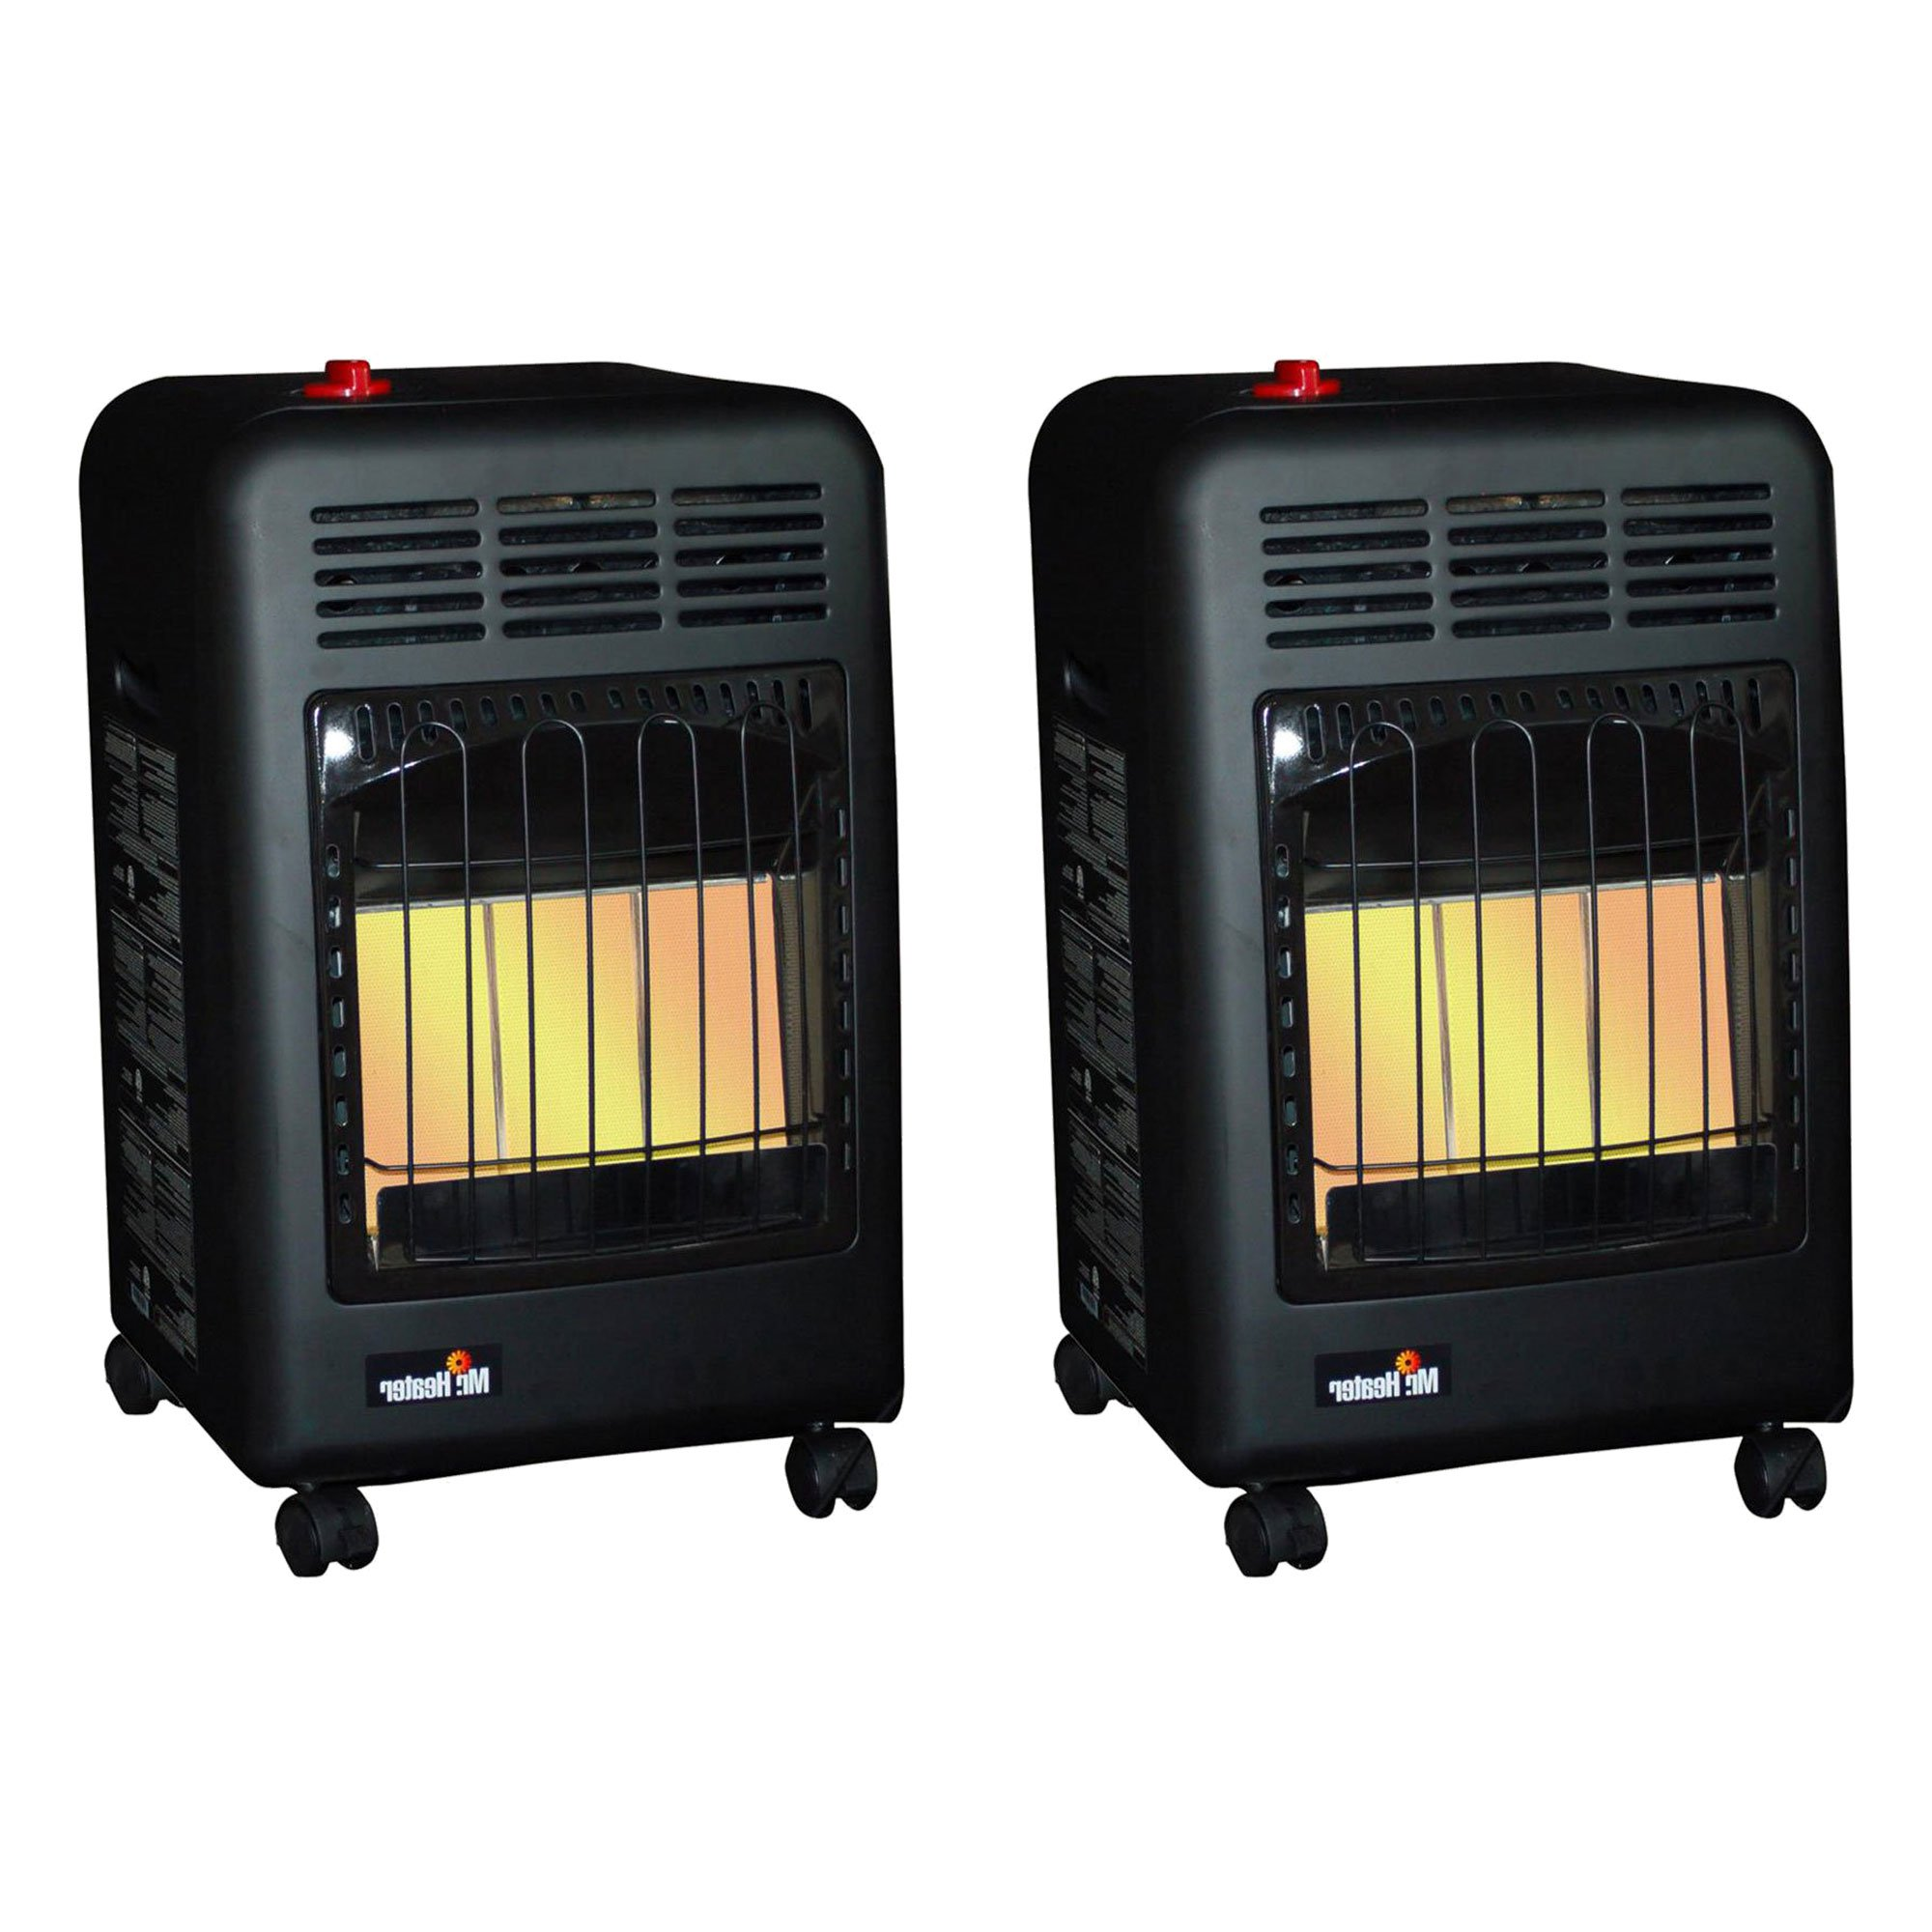 Garage Heater For Dogs Mr Heater 18000 Btu Radiant Propane Cabinet Outdoor Space Heater 2 Pack